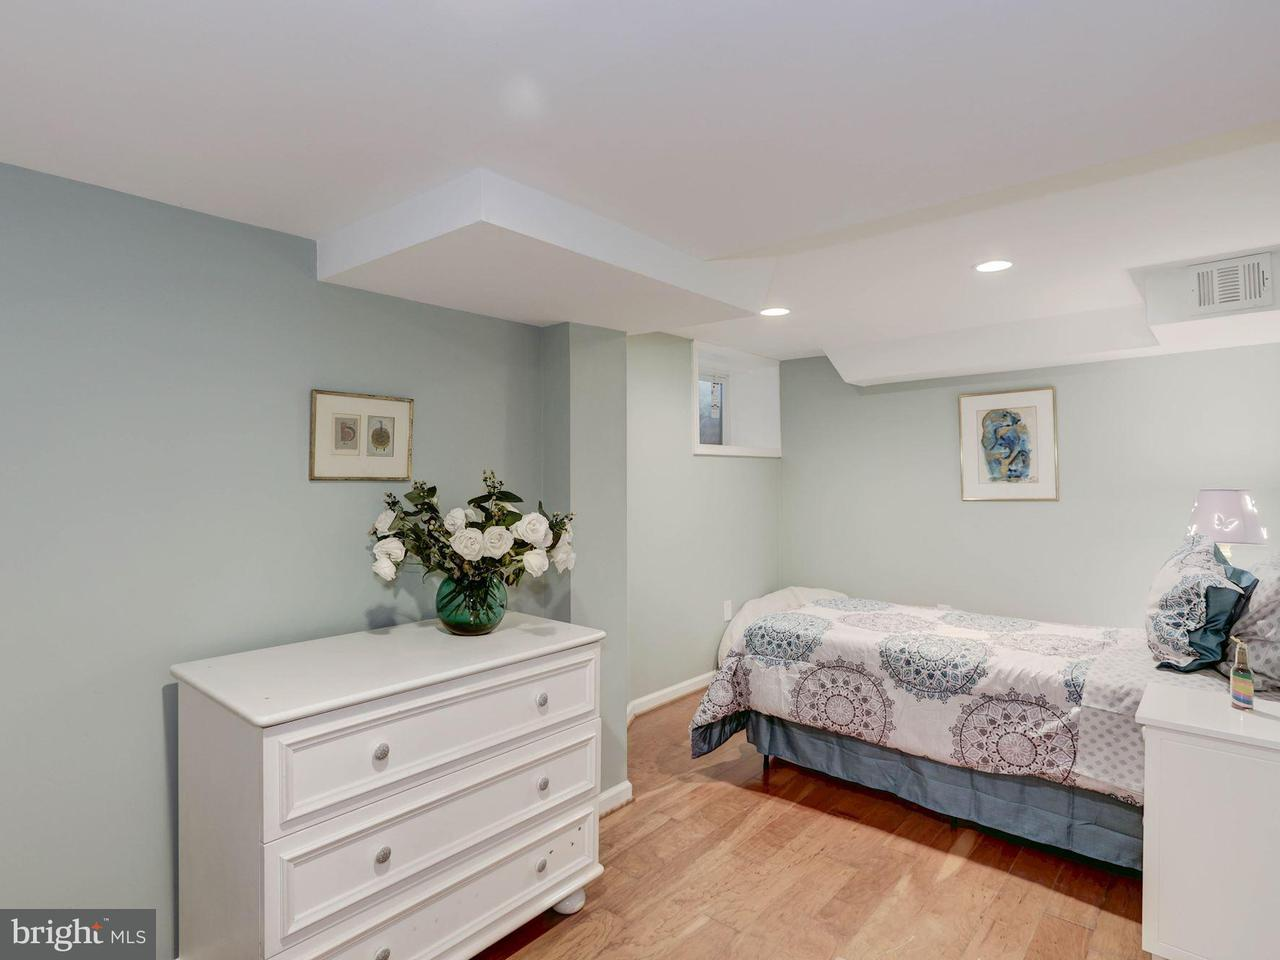 Additional photo for property listing at 5153 Tilden St NW  Washington, District Of Columbia 20016 United States